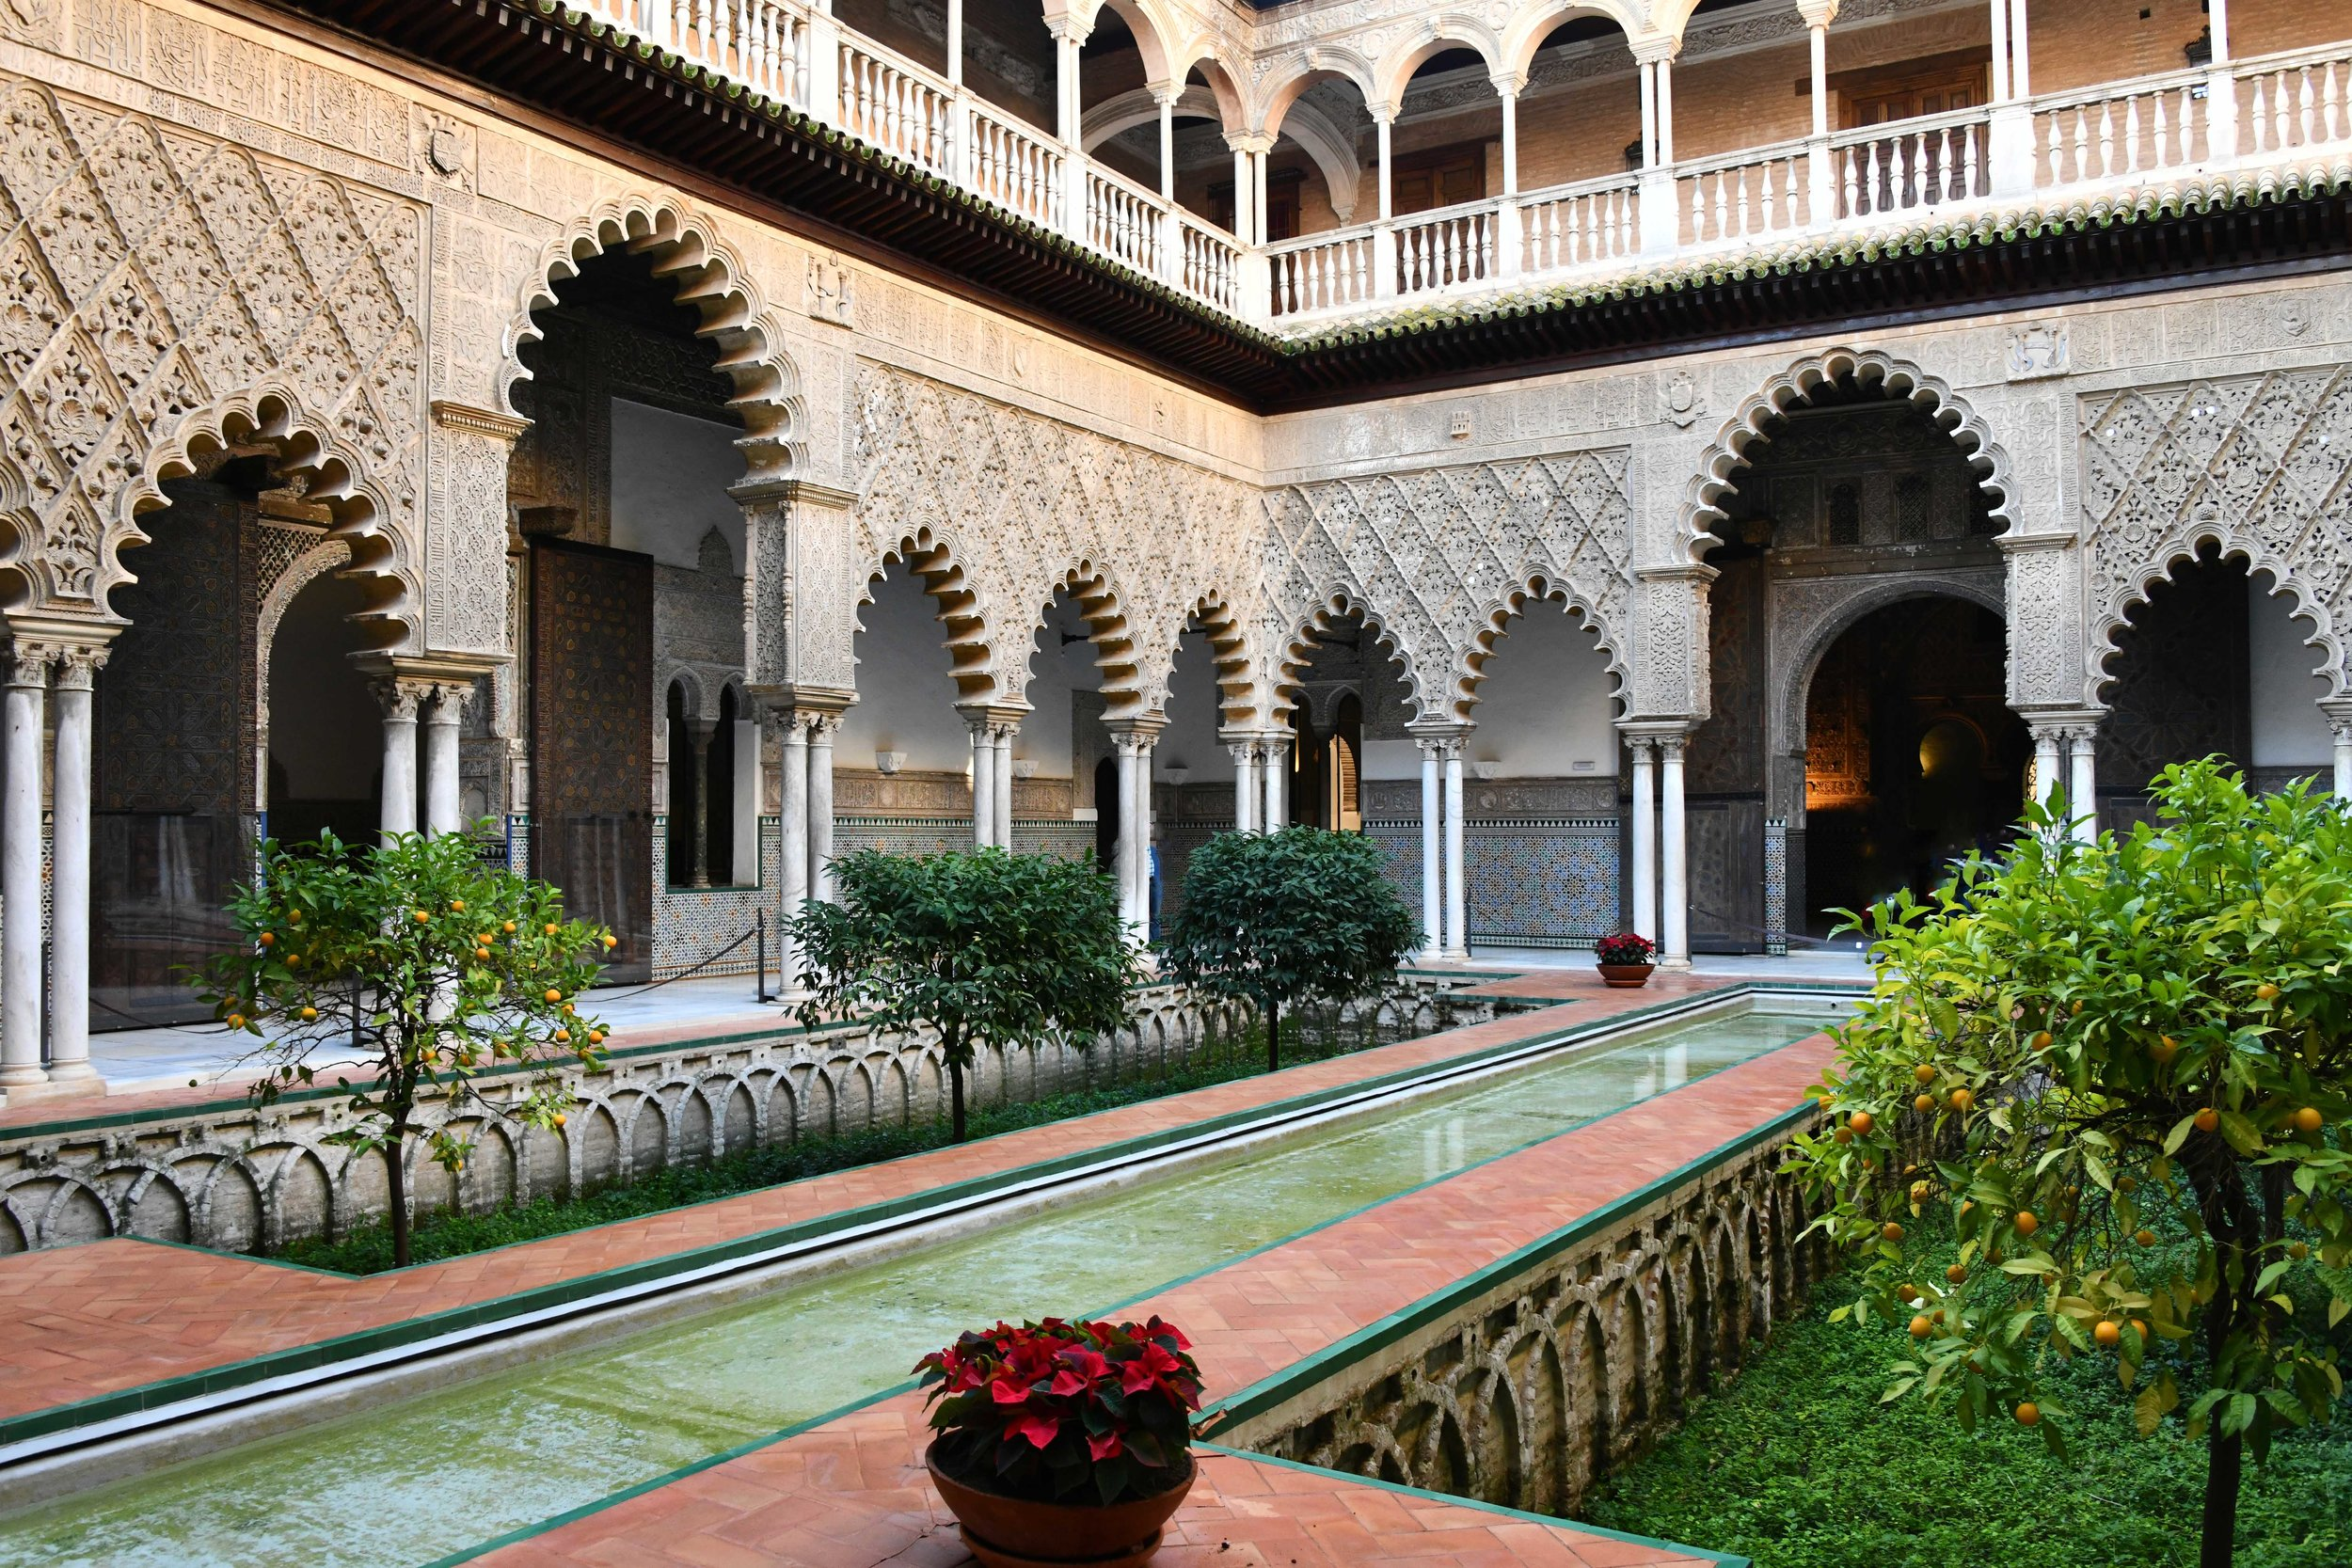 Patio de las Doncellas, Real Alcázar (Photo: Robert Hunt)